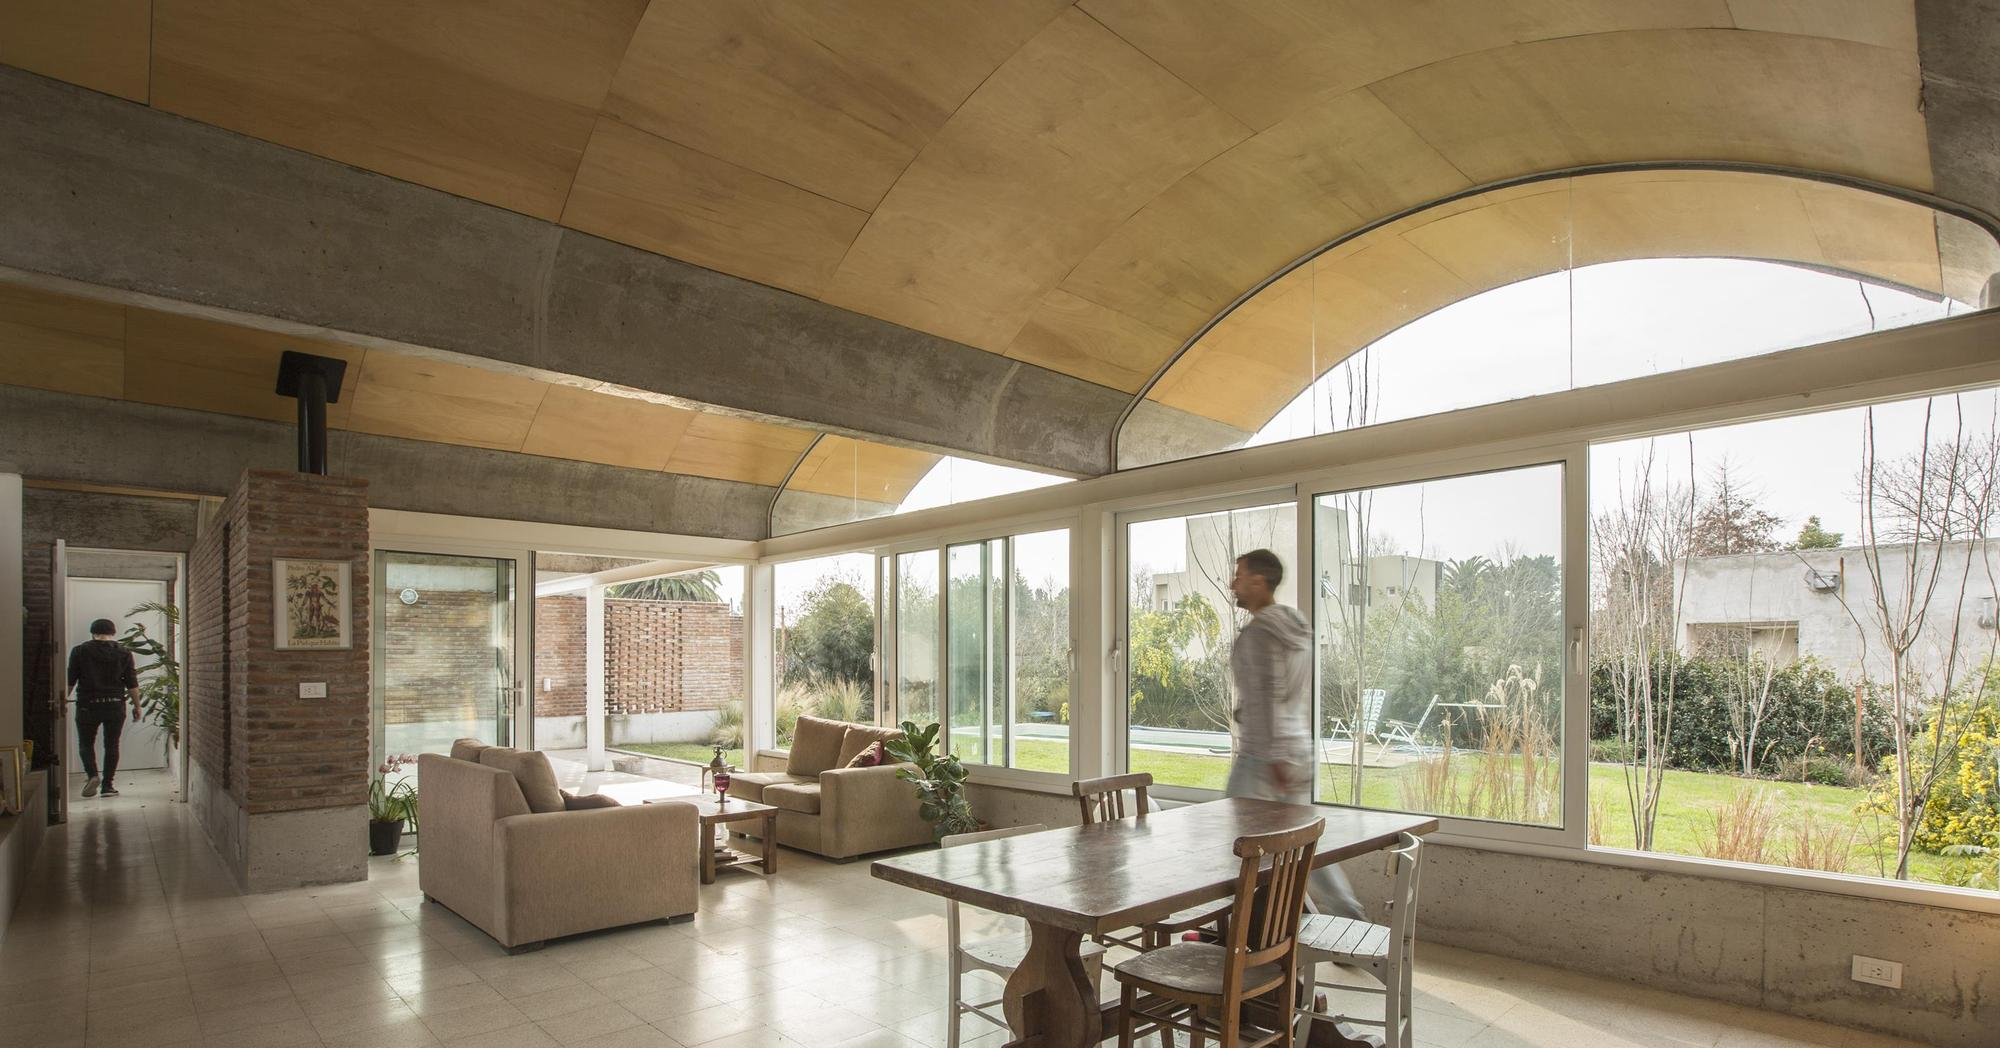 Interiors with Vaulted Ceilings: 21 Non-Obvious Designs ...